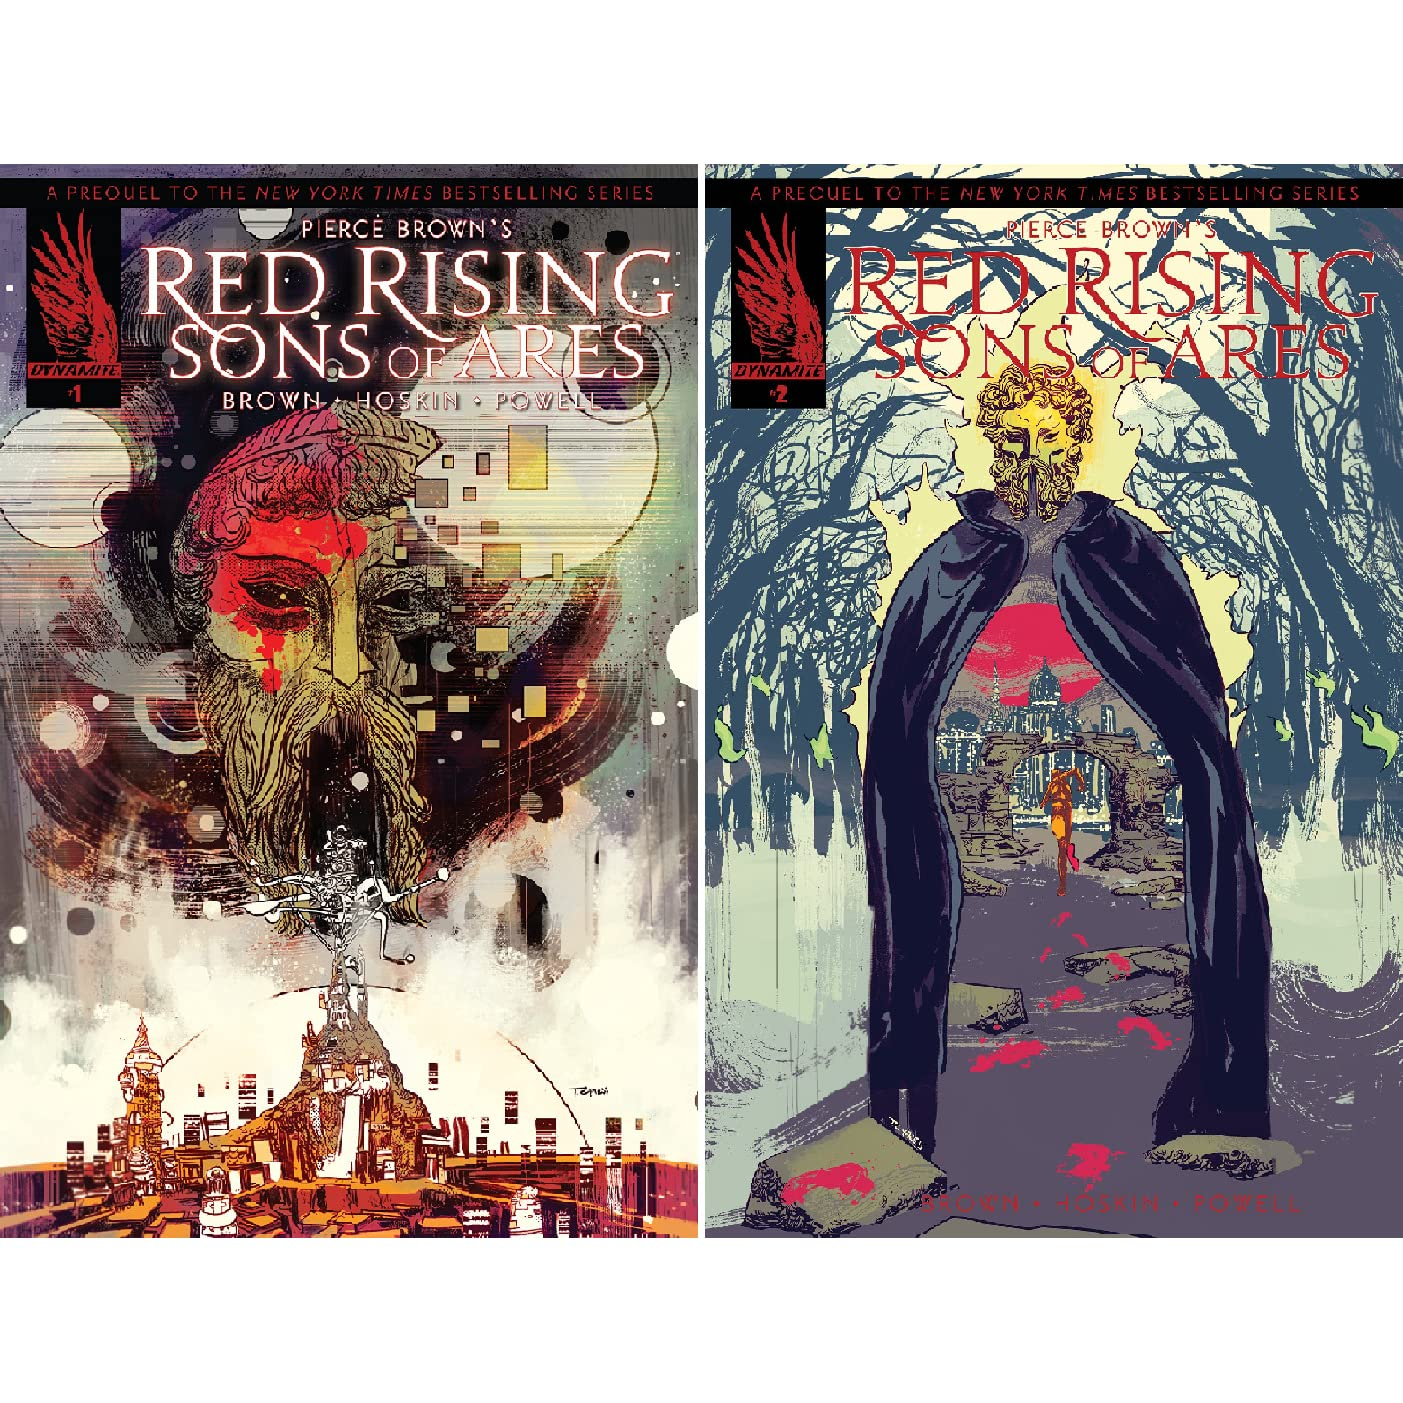 Pierce Brown's Red Rising: Sons Of Ares (Issues) by Pierce Brown